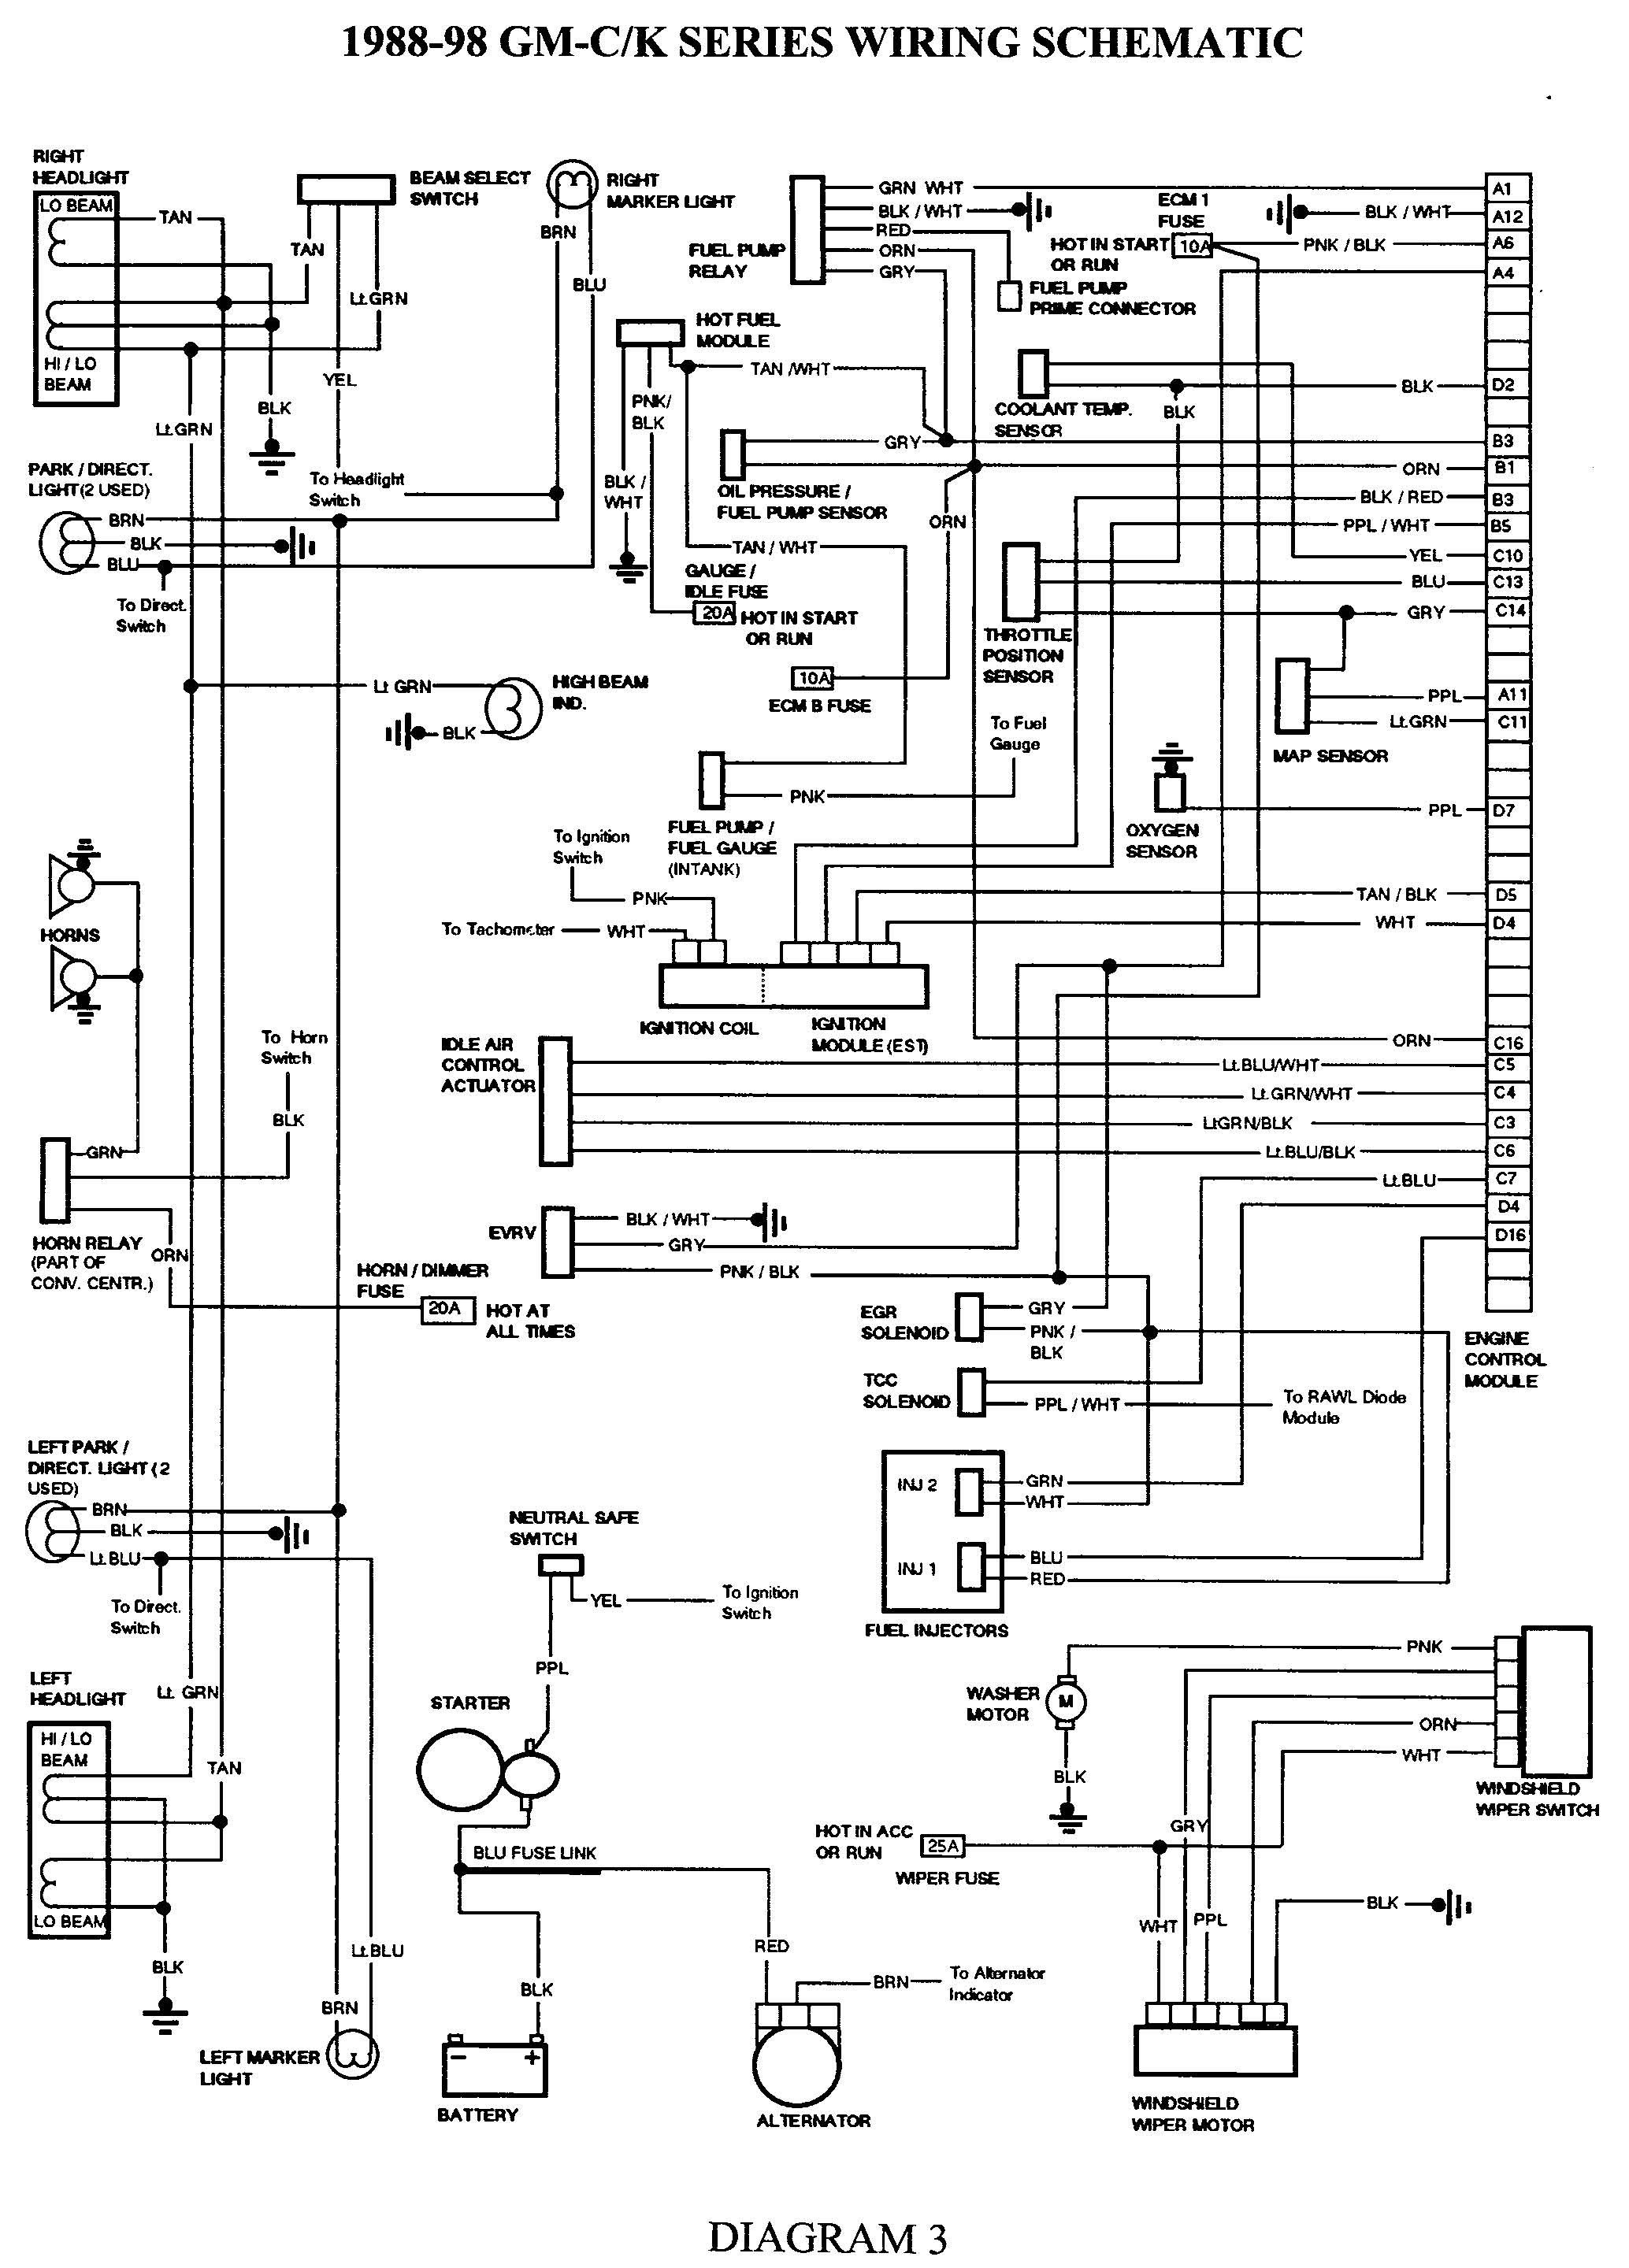 2006 Bass Tracker Wiring Diagram - 2007 4 6 Liter Ford Engine Diagram -  cheerokee.yenpancane.jeanjaures37.fr | Bass Tracker Wiring Harness |  | Wiring Diagram Resource